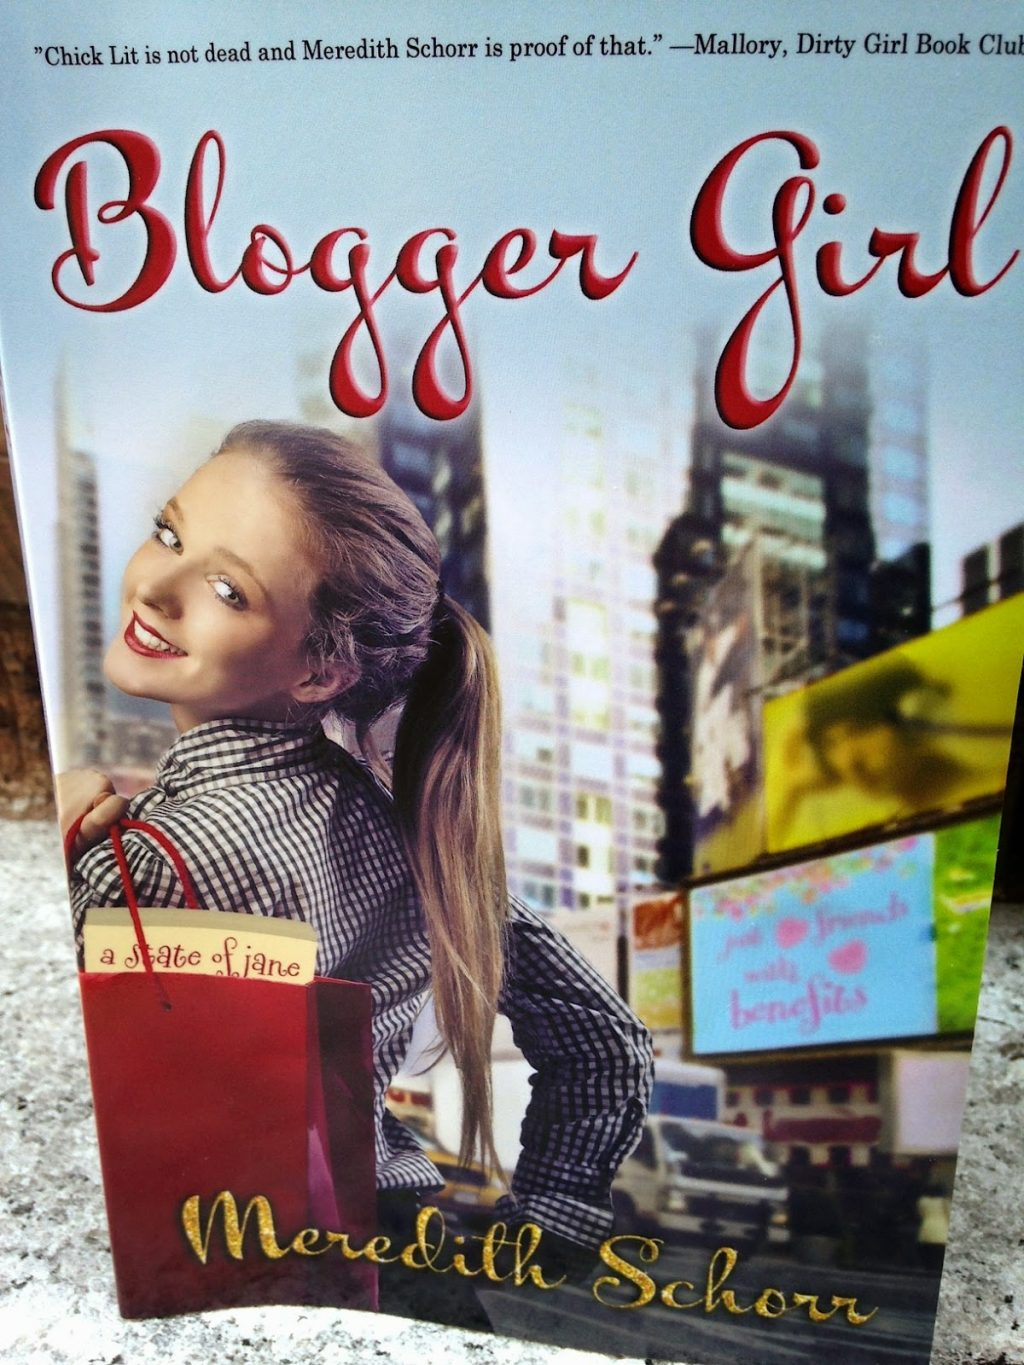 meredith schorr, blogger girl, new york, chick lit,